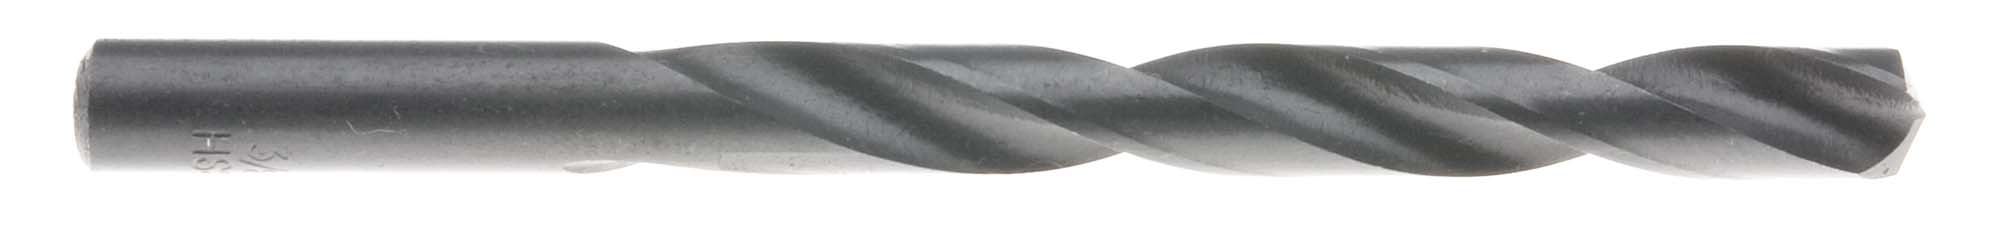 "#37 (.1040"") Heavy Duty Split Point Jobber Drill Bit, High Speed Steel"